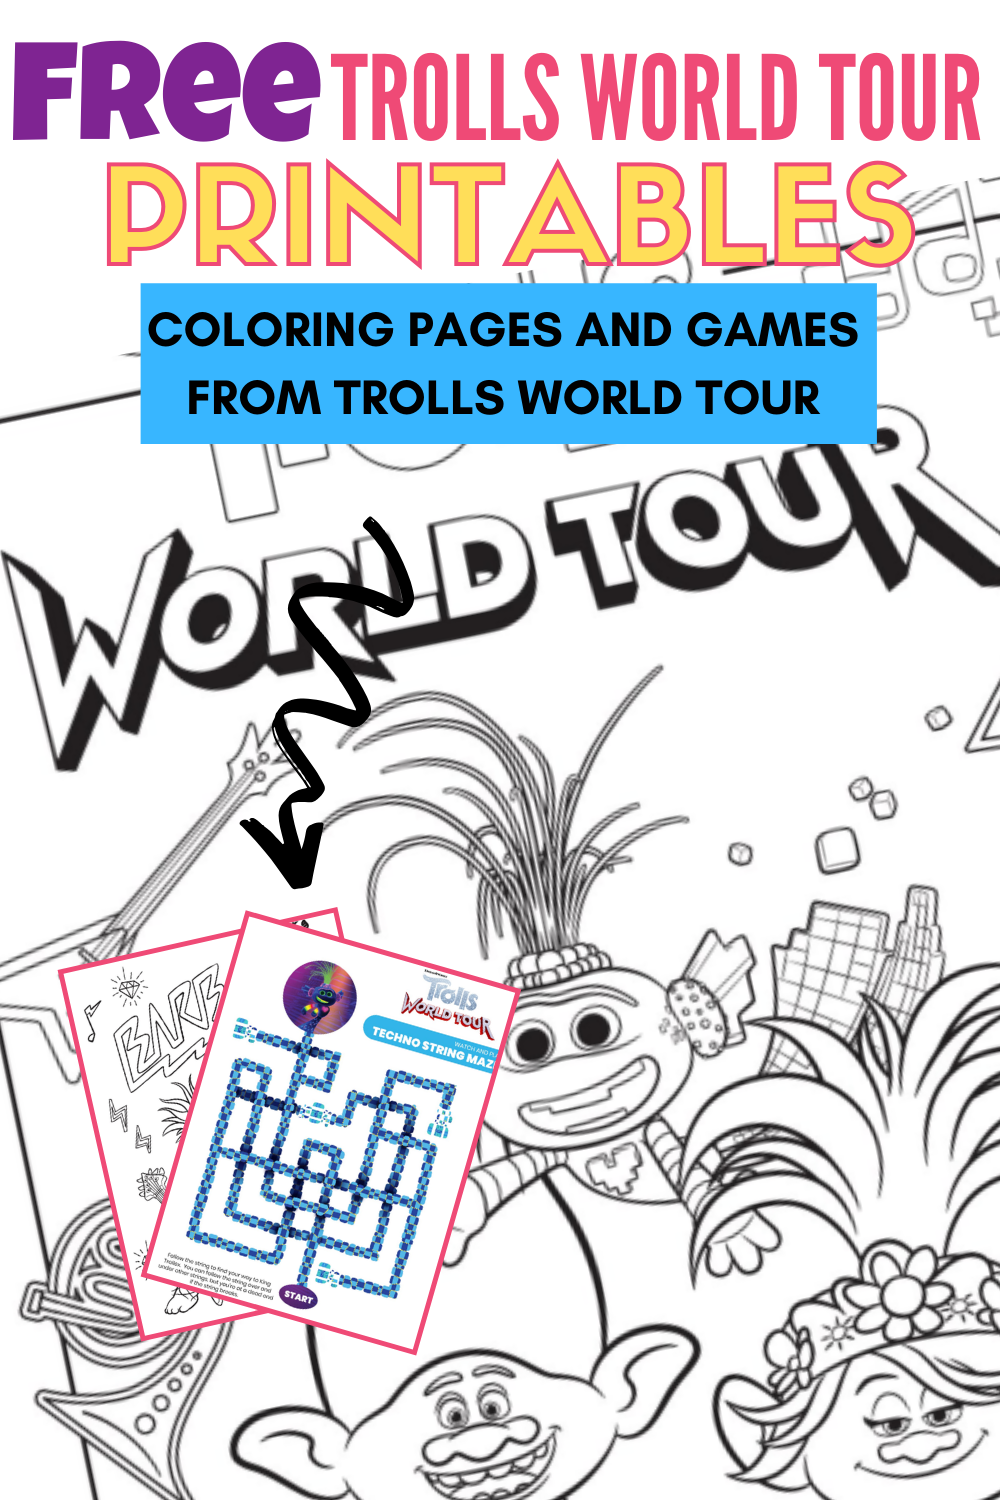 Free Trolls World Tour Coloring Pages And Printable Activities Coloring Pages Coloring Pages For Kids Tours